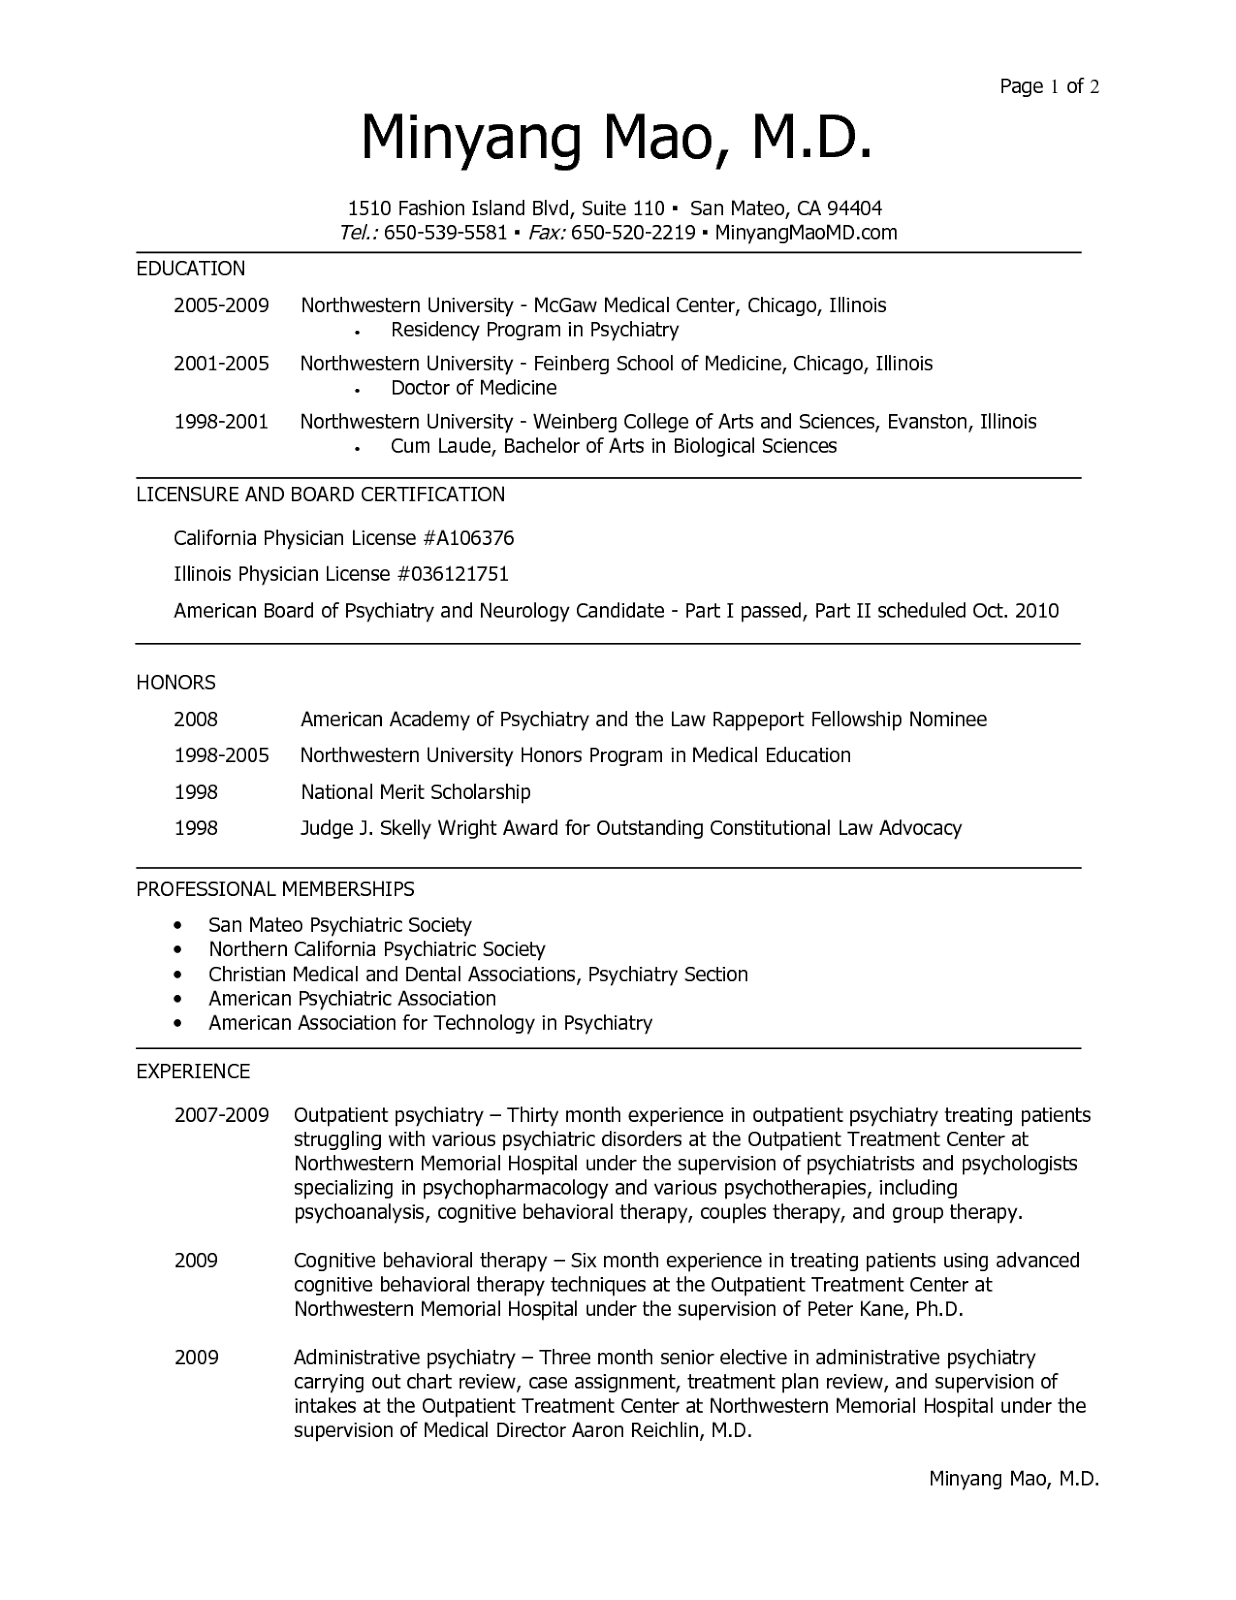 resume format dental landman resume resume format pdf dental nursing resume dental nursing resume template cover dental